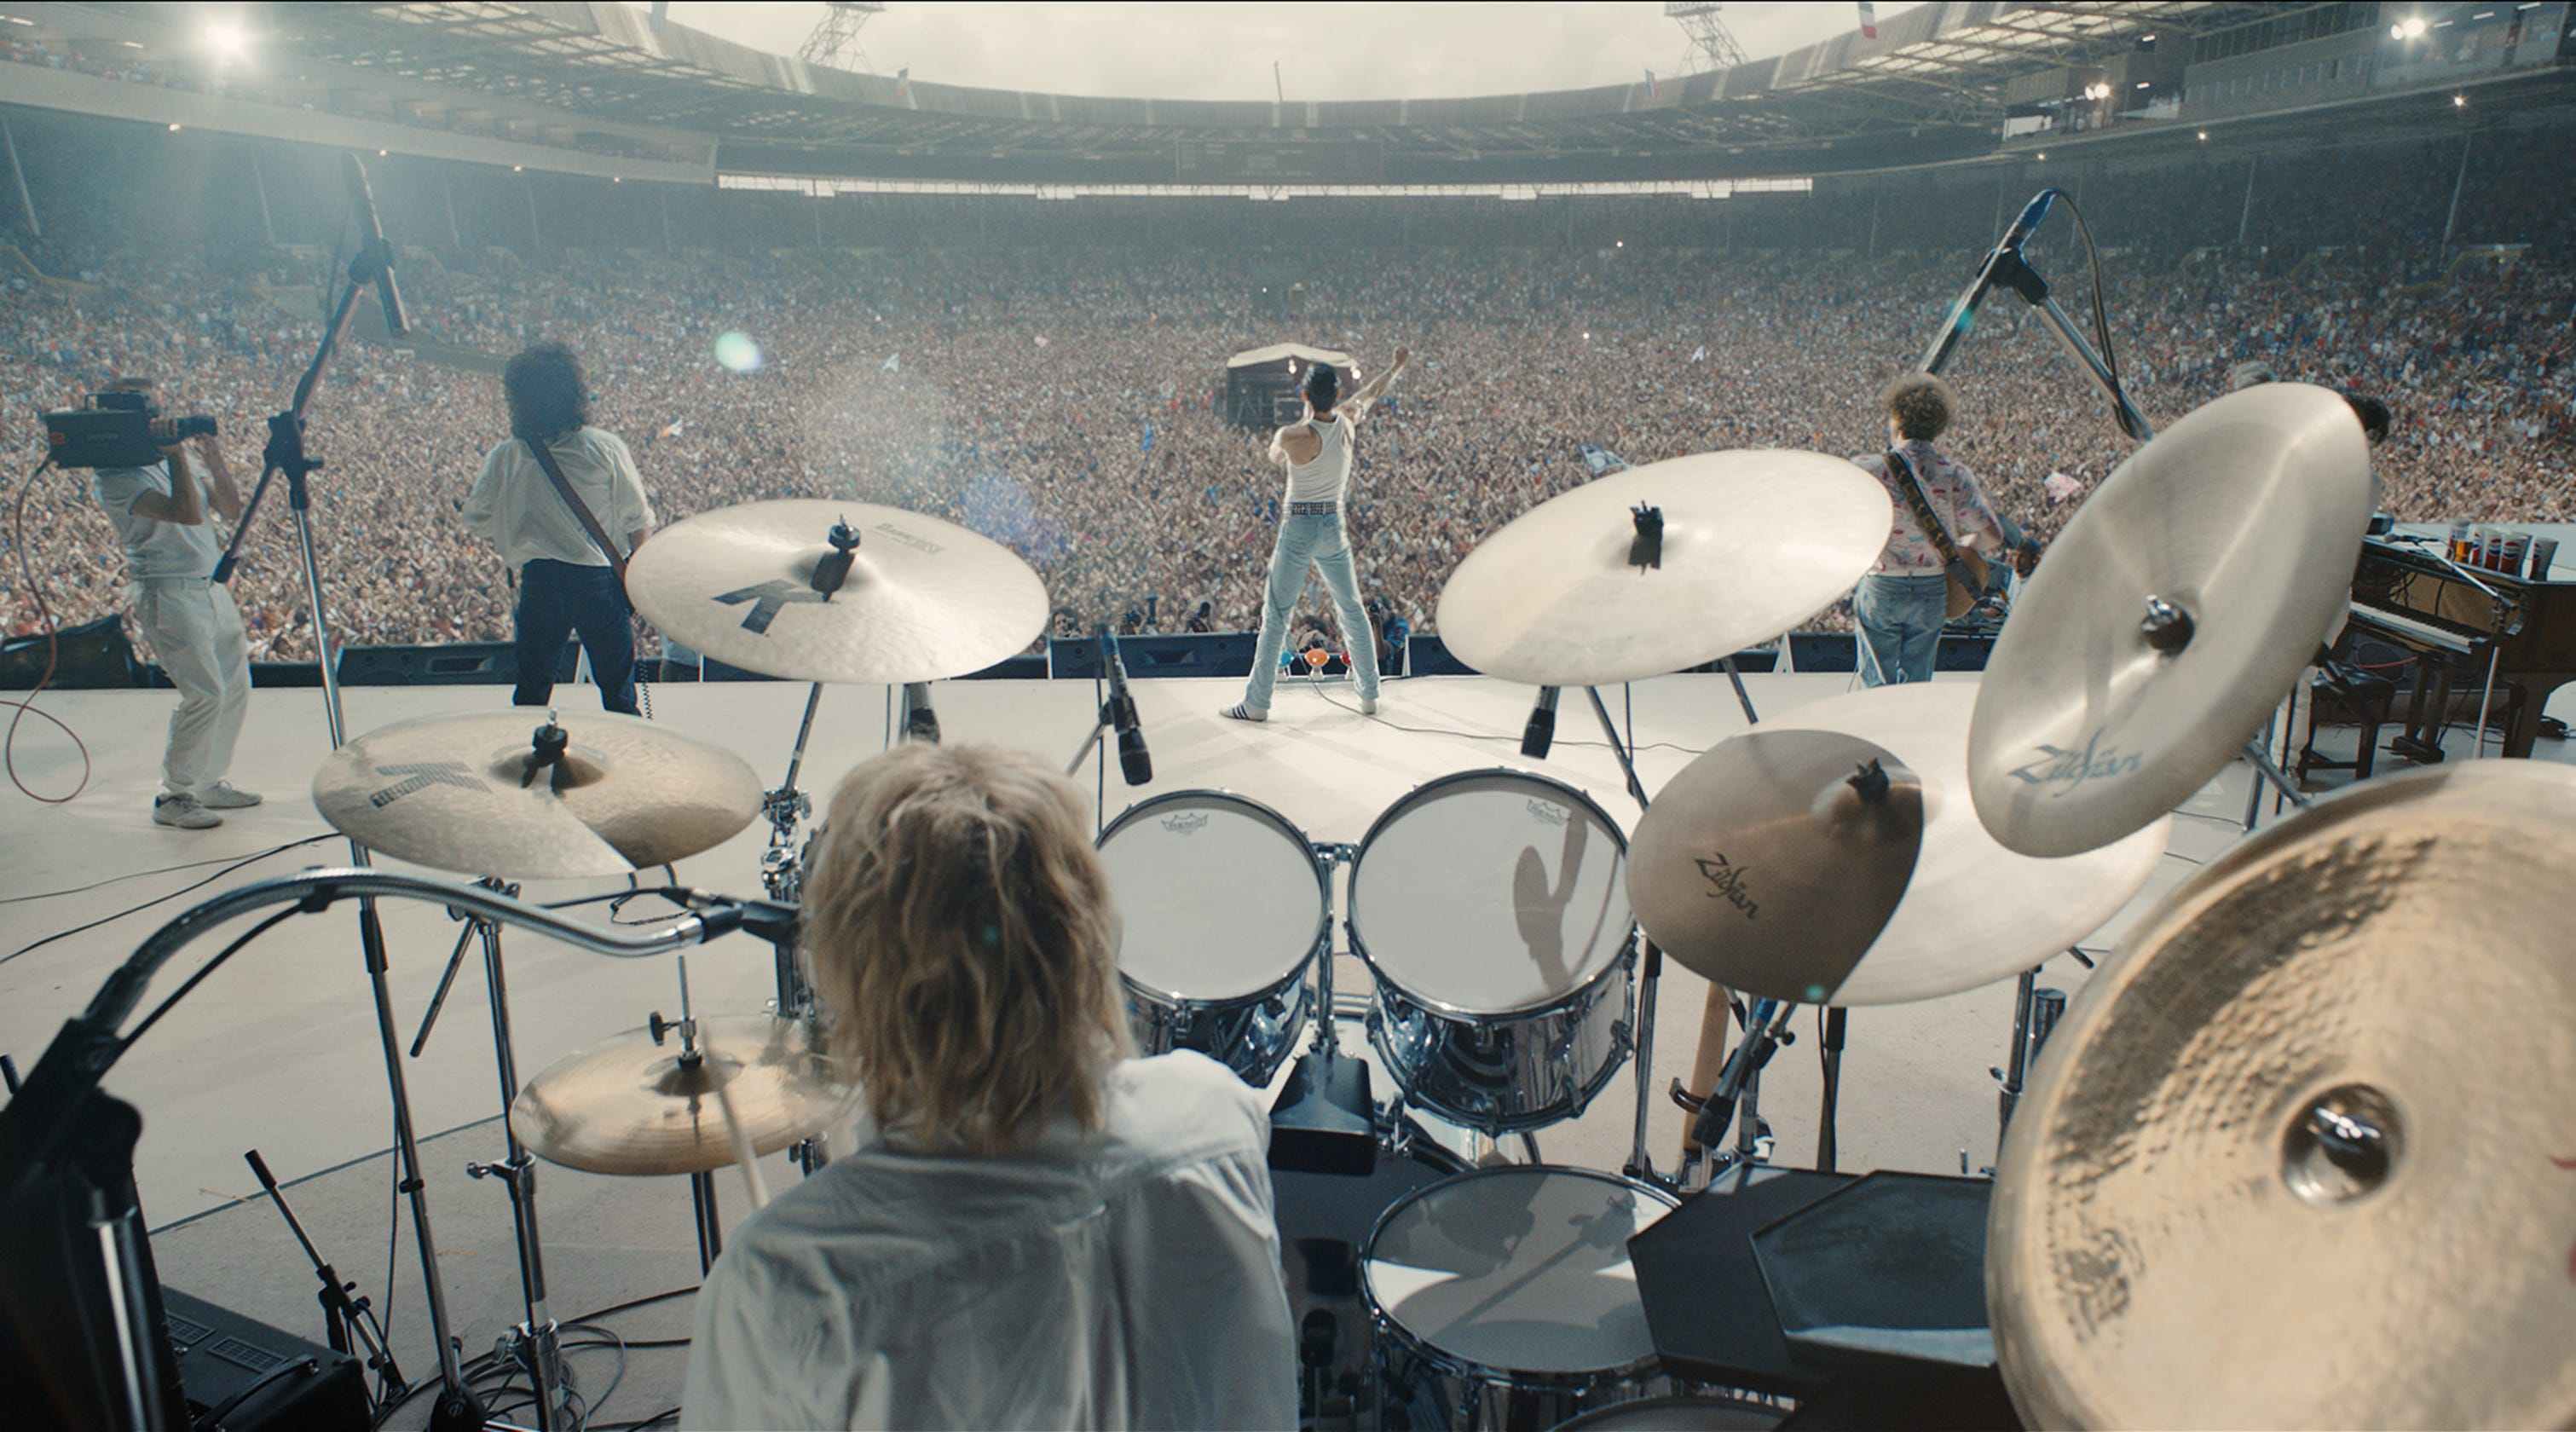 Bohemian Rhapsody': How the film re-created Queen's epic